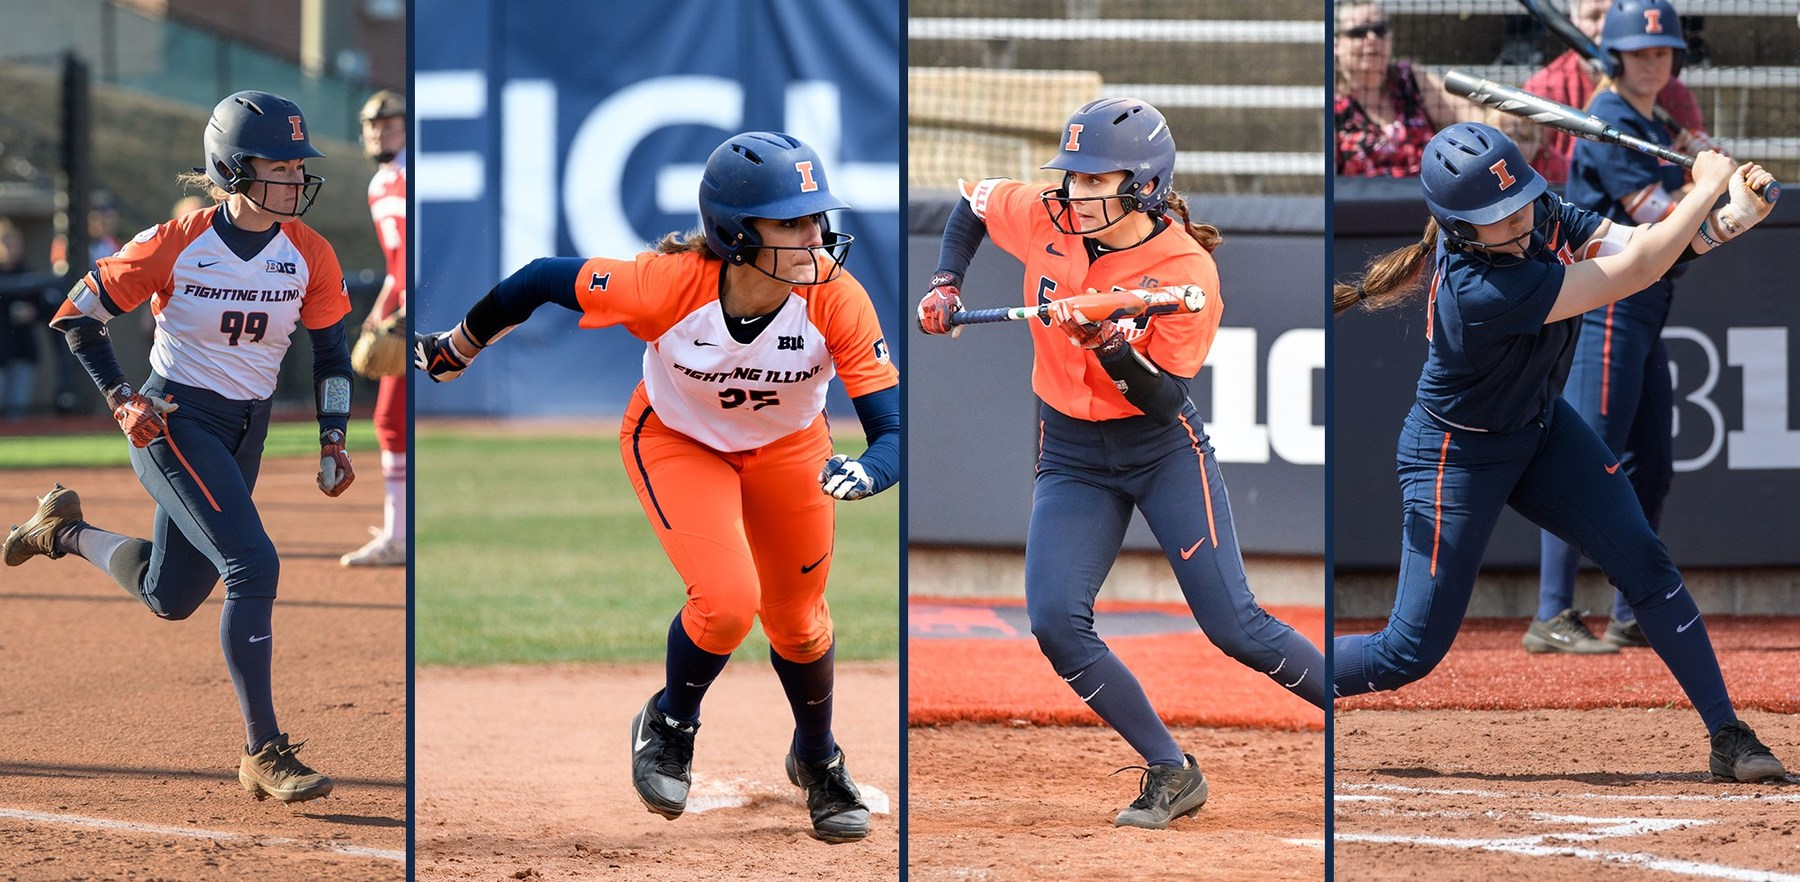 Illini softball players in action